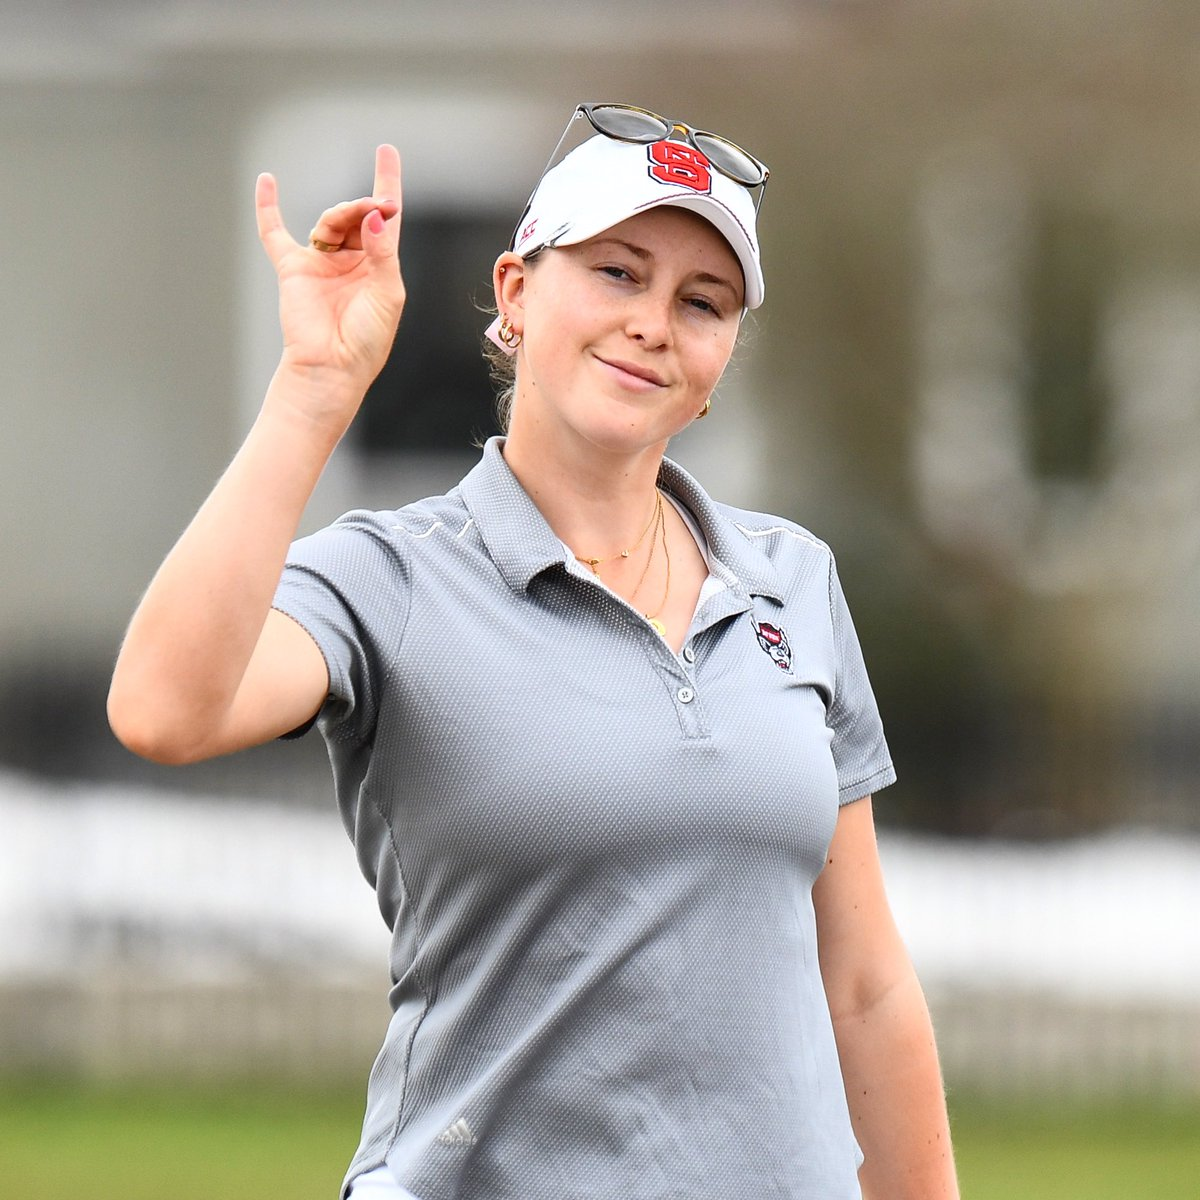 Congrats to Laura Kowohl on being named our team MVP during the 2018-19 season at last night's #Wolfies2020!  She led the team in stroke average and earned three top 20 finishes. https://t.co/EDN2NTXAI3